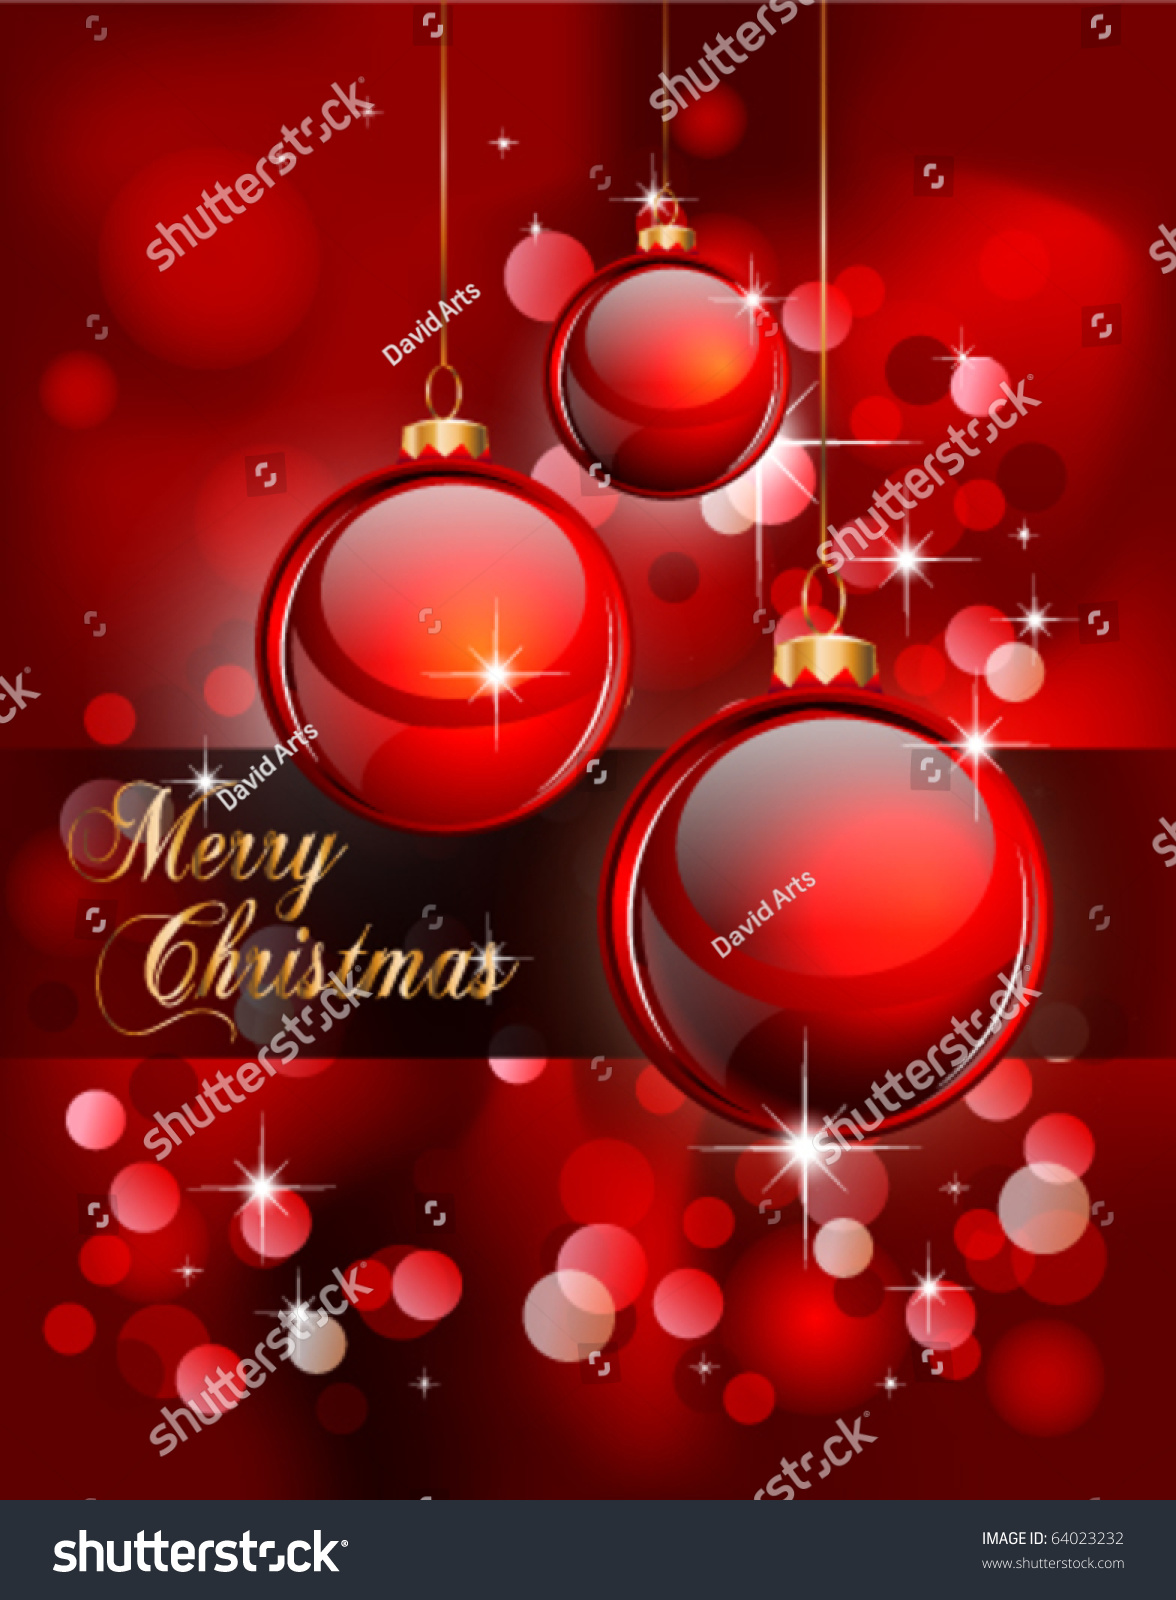 Merry Christmas Elegant Suggestive Background Greetings